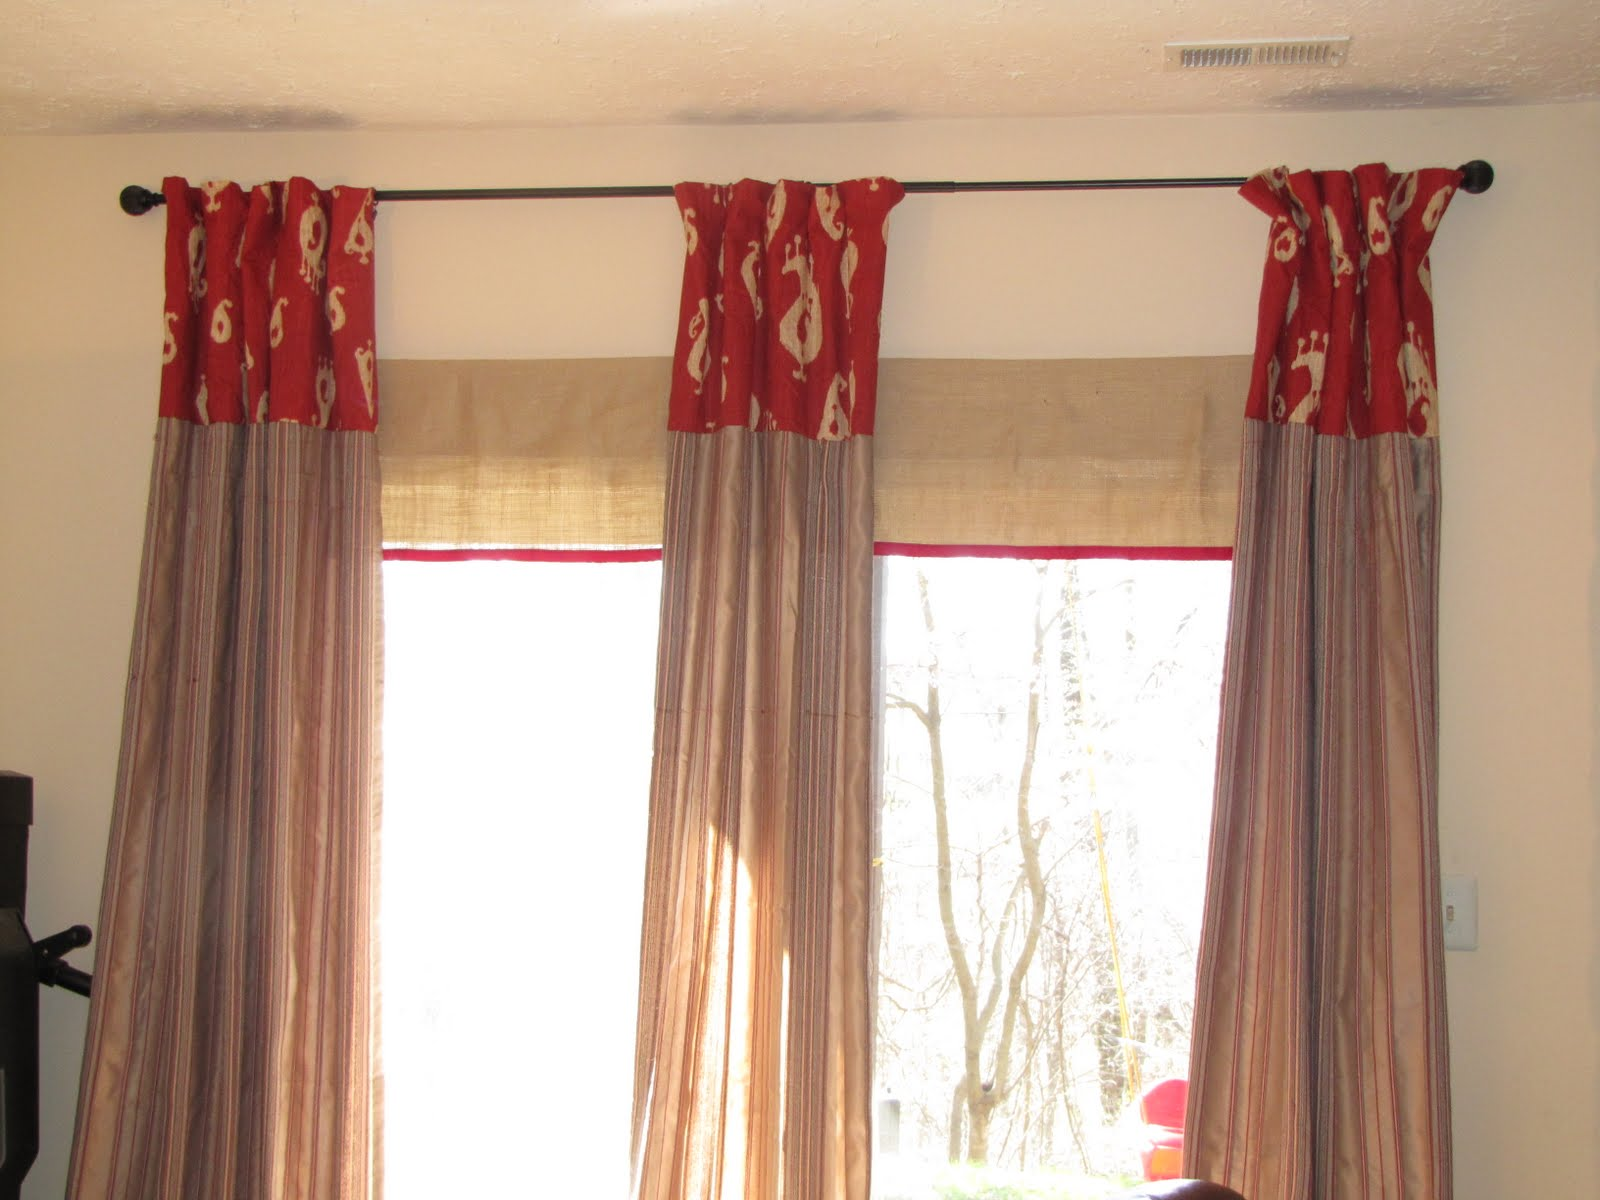 Curtains for sliding doors ideas curtain menzilperde net - Curtain options for sliding glass doors ...